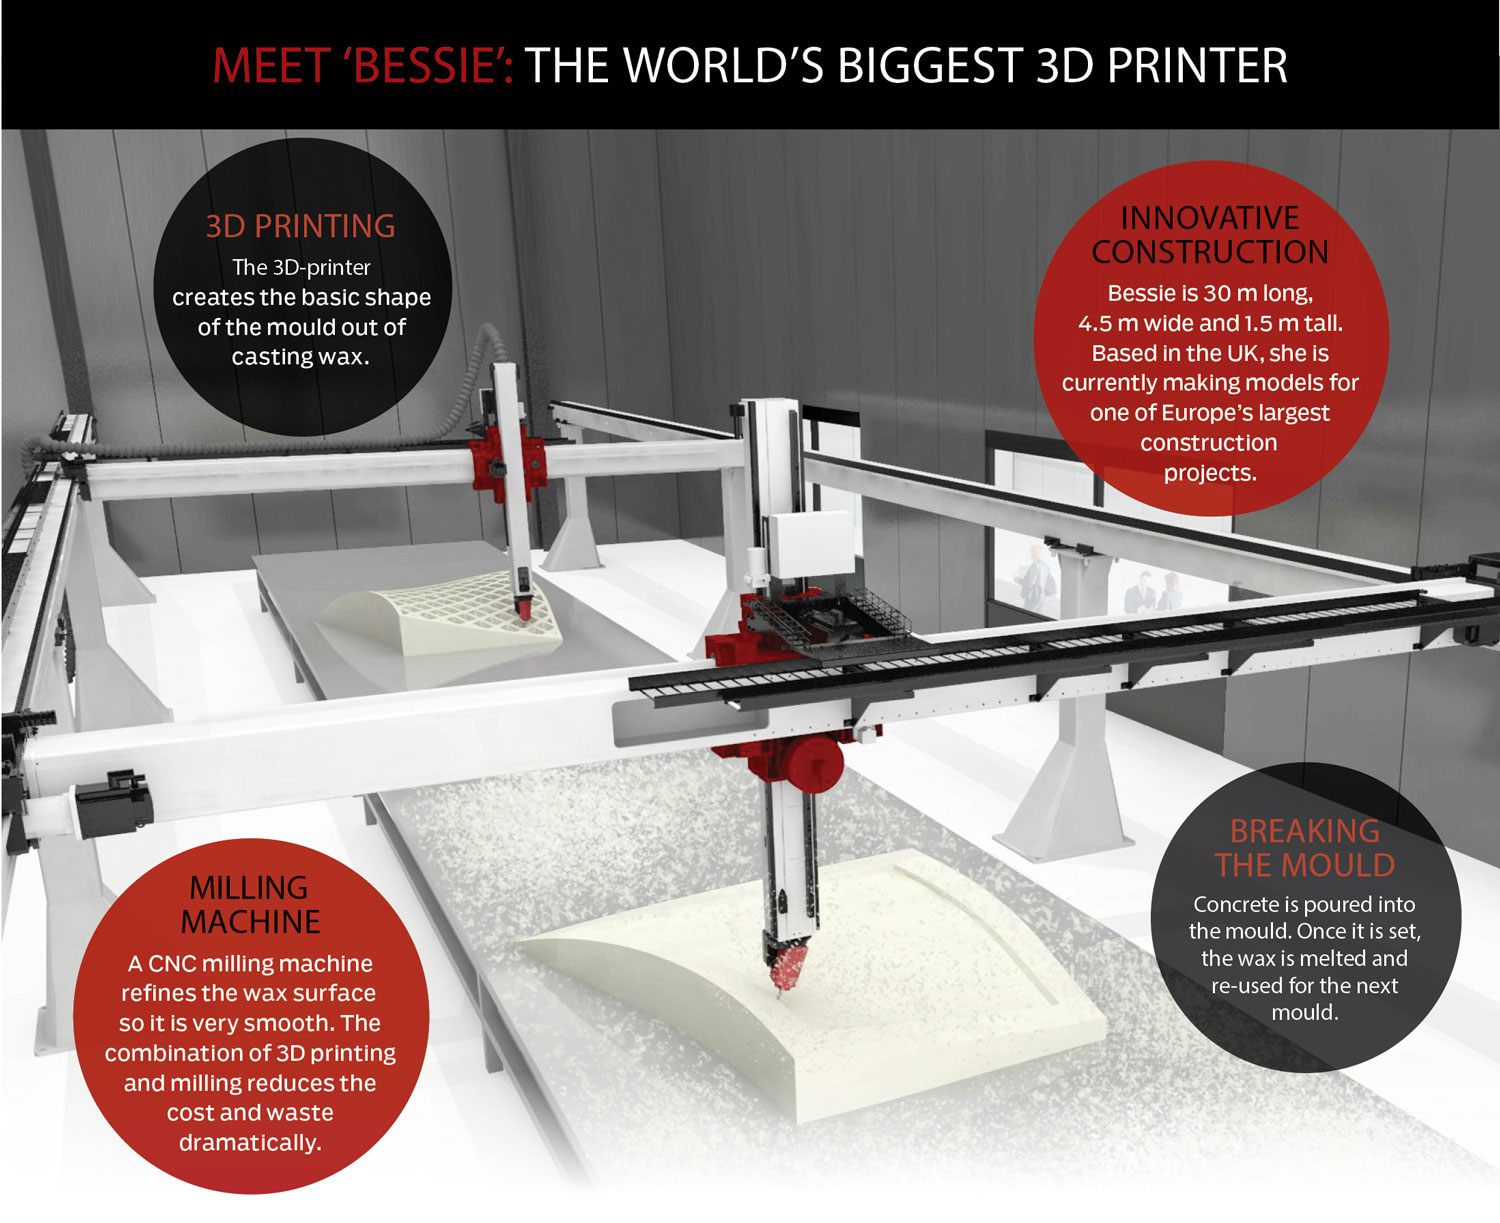 world's largest 3D printer